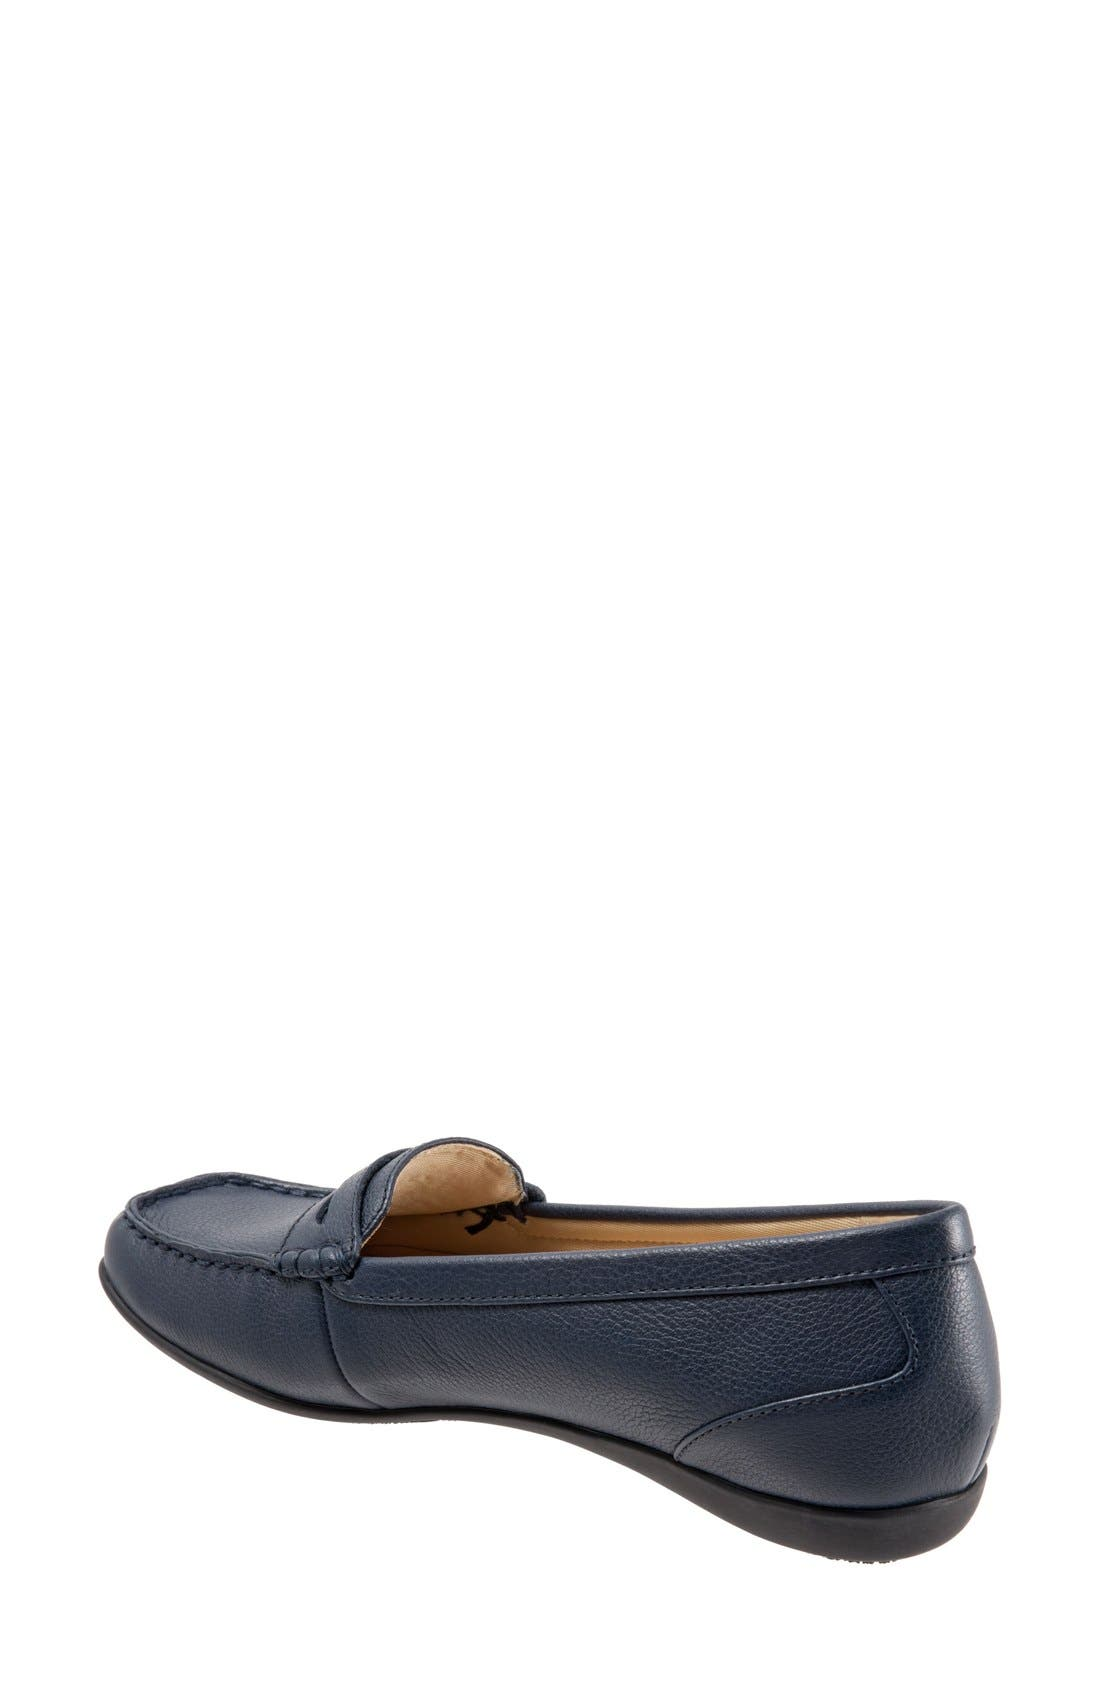 Alternate Image 2  - Trotters 'Staci' Penny Loafer (Women)